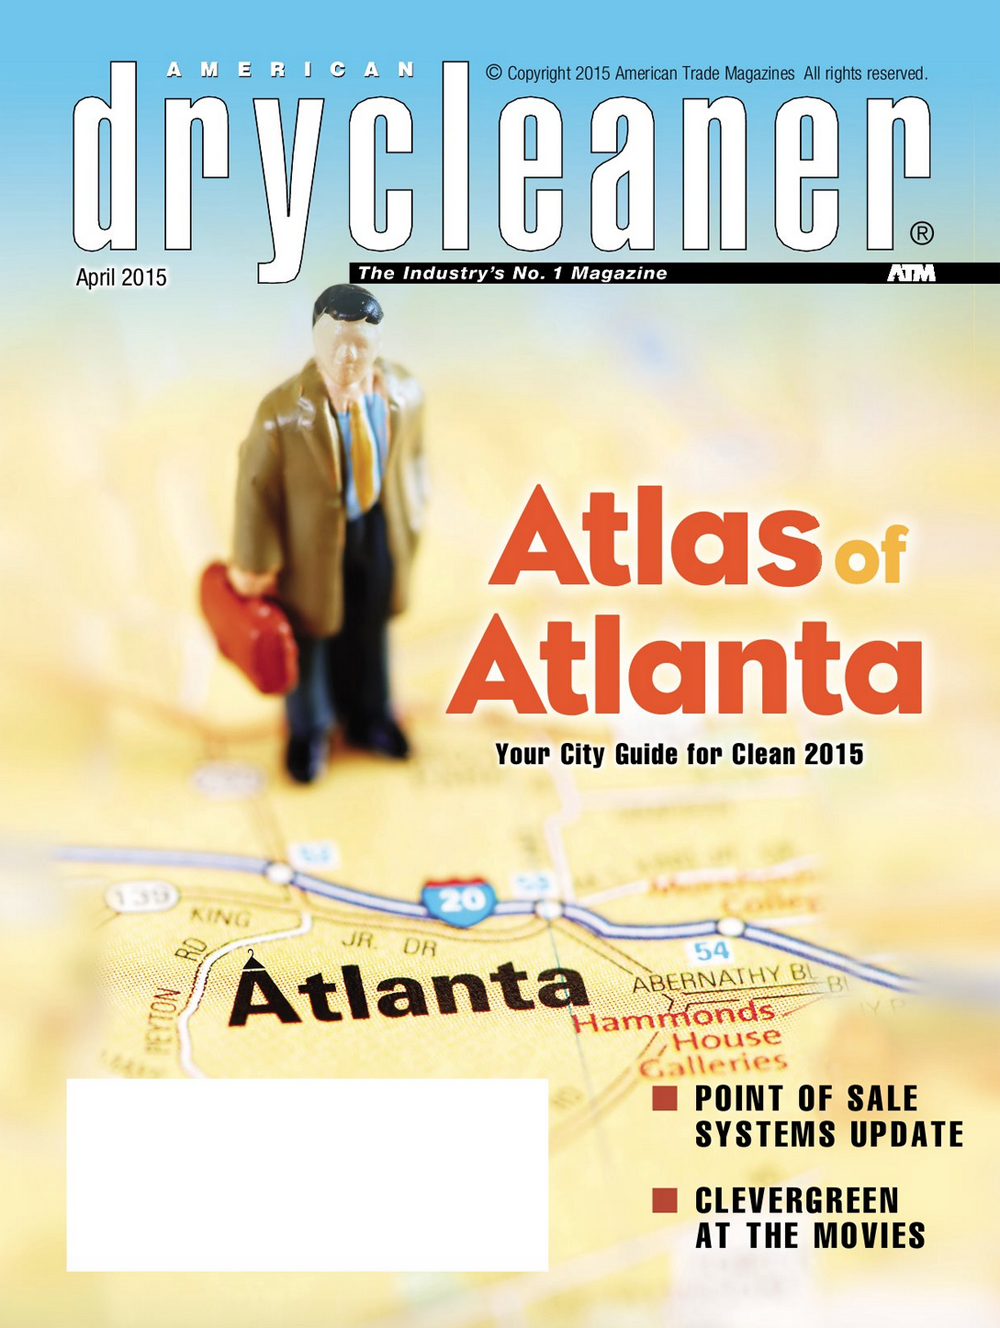 American Dry Cleaner Magazine - Boston Dry Cleaner, Boston Dry Cleaning Clevergreen Cleaners Featured